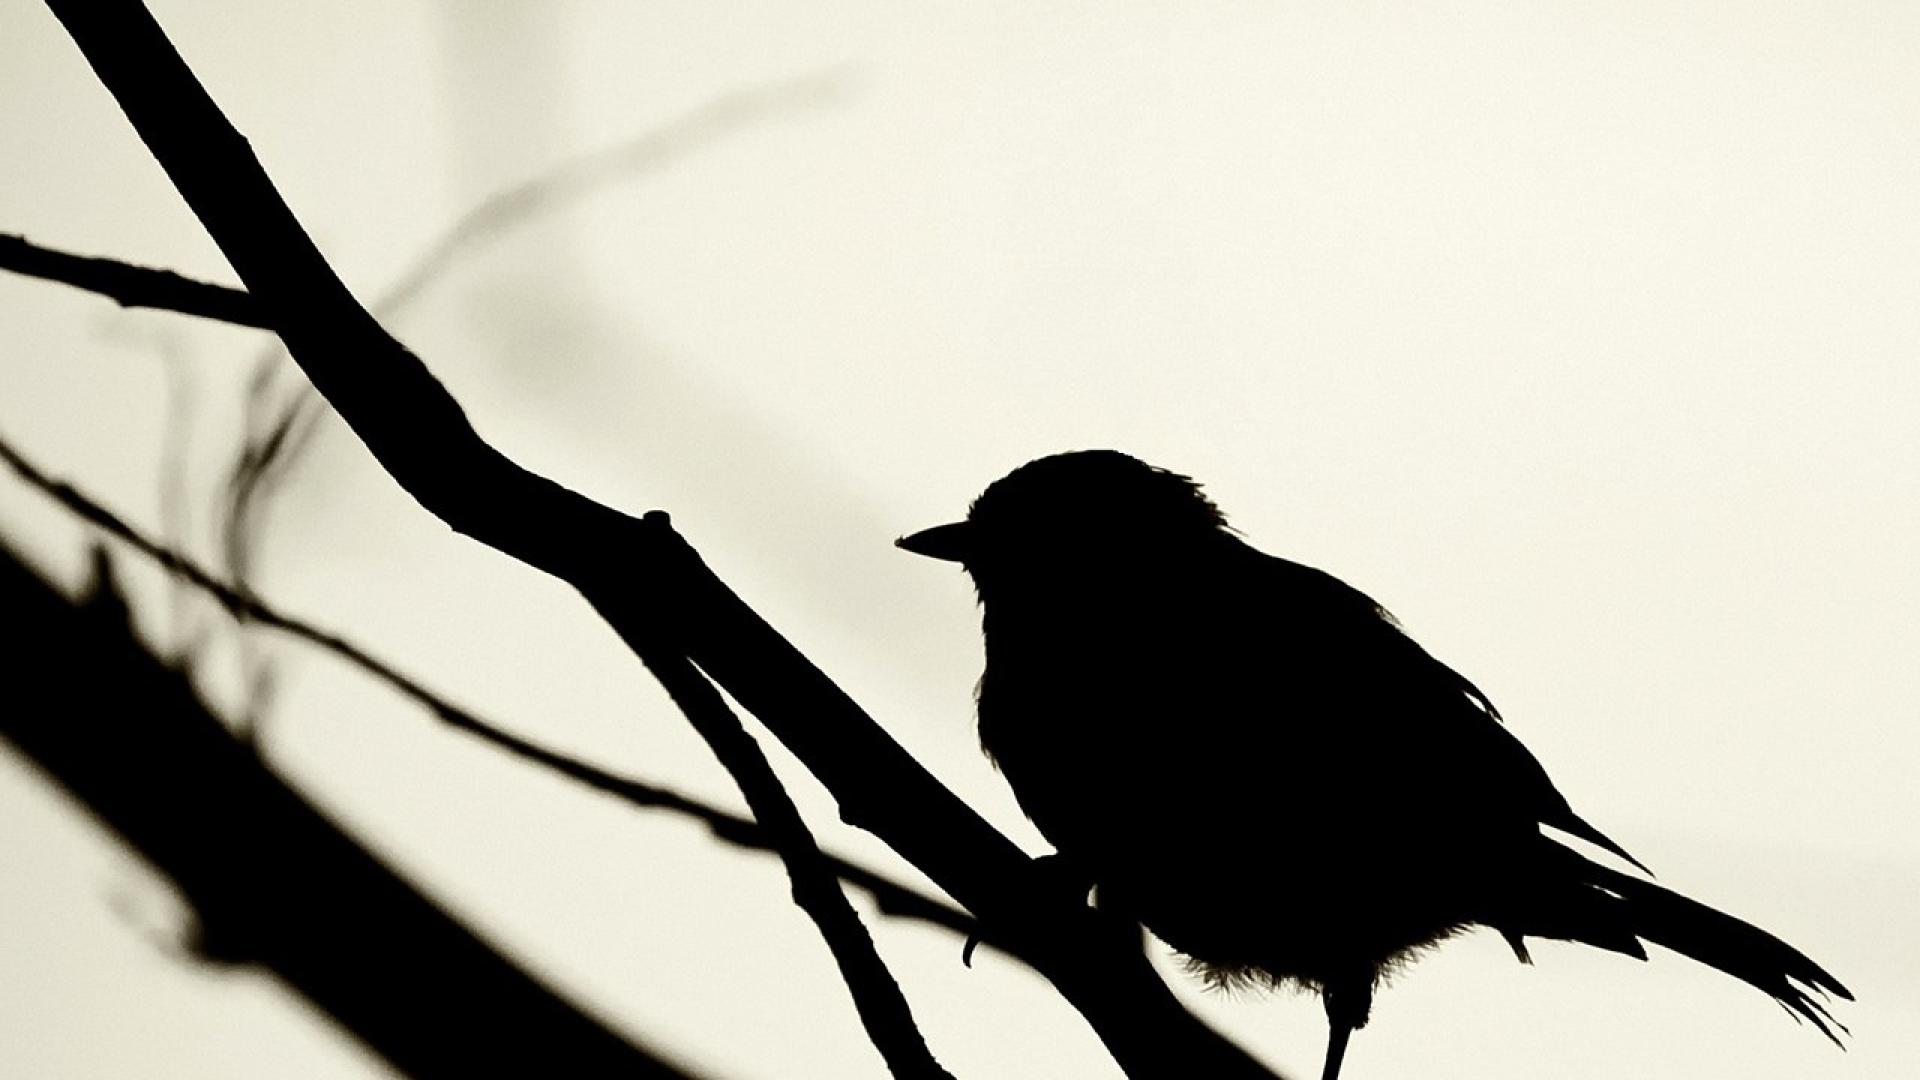 Bird Black And White Wallpaper High Resolution - Bhstorm com